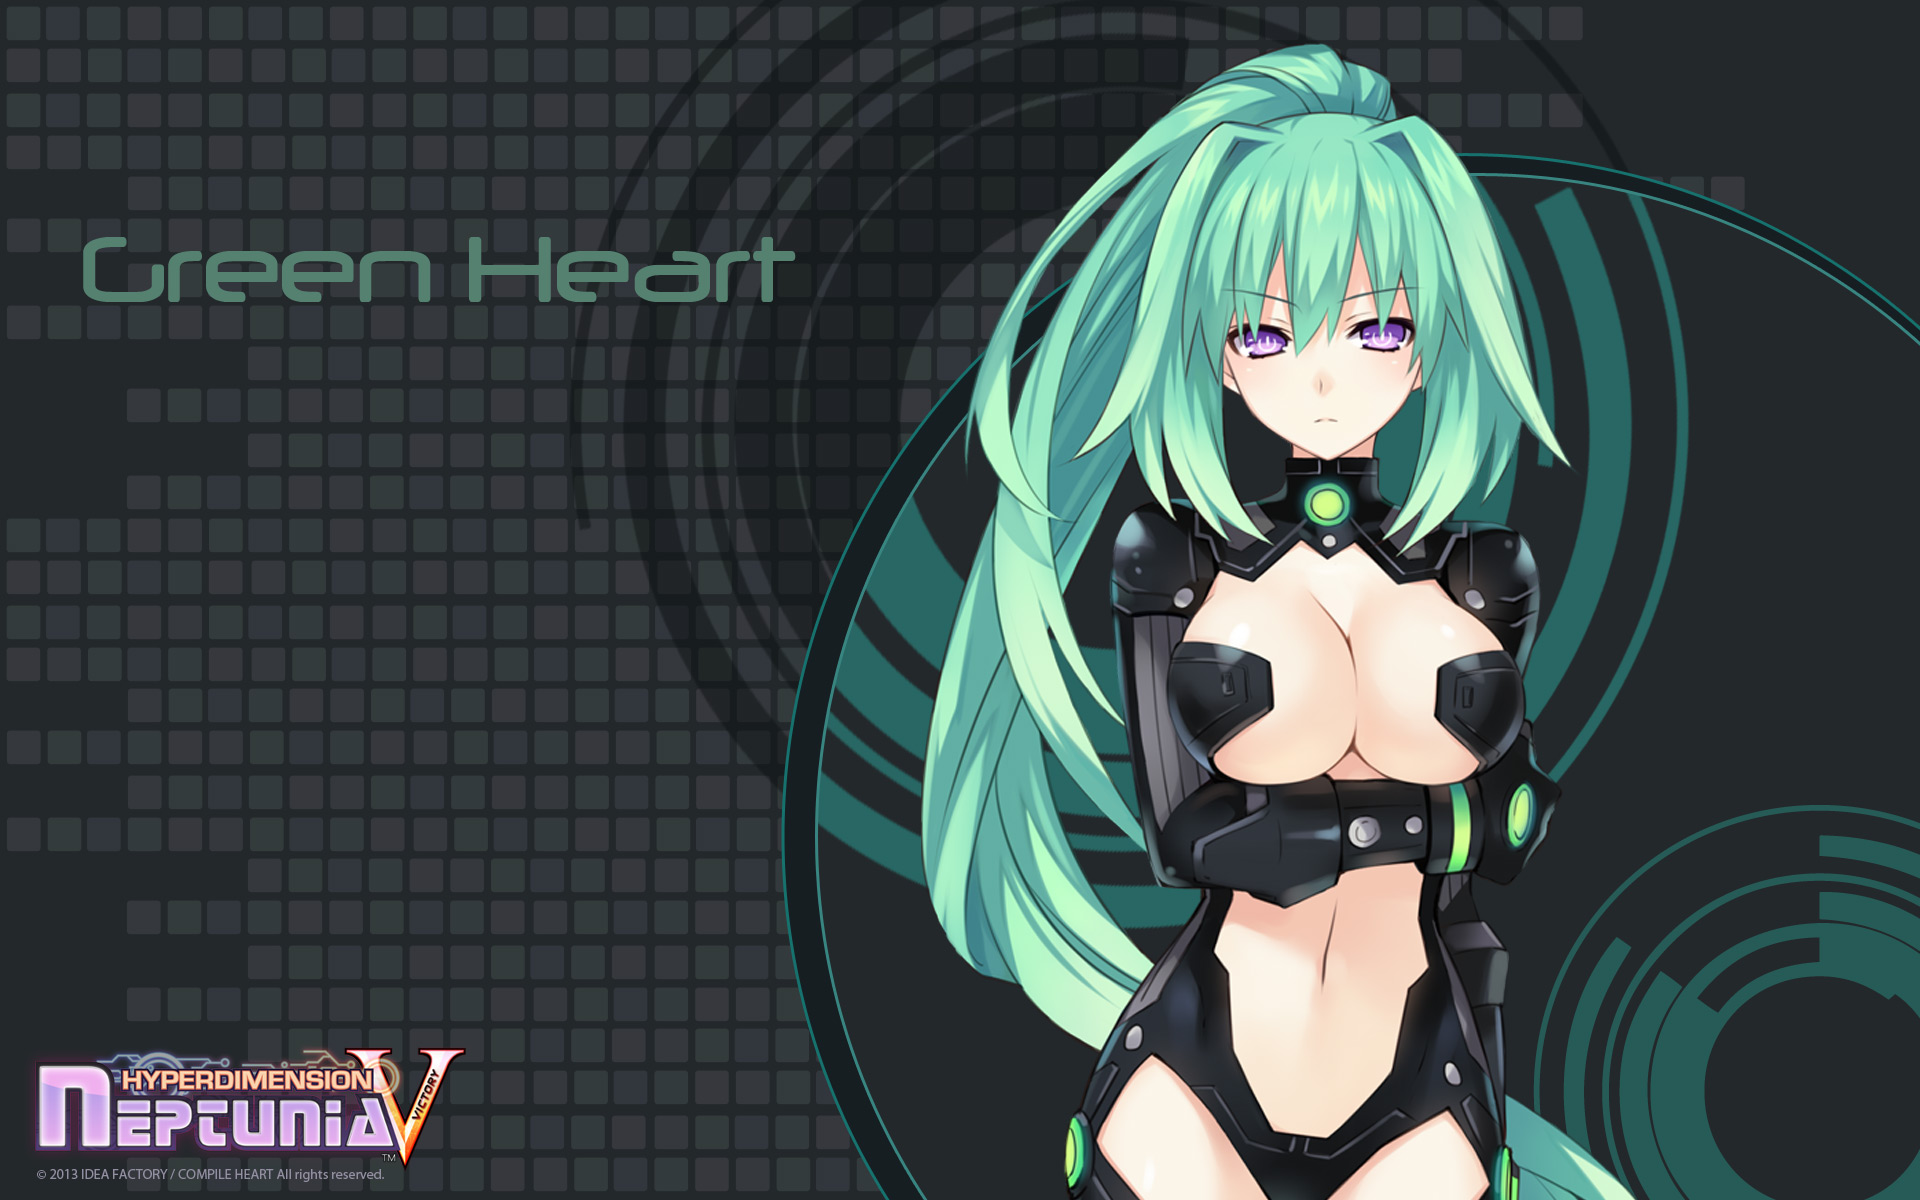 Hyperdimension Neptunia Victory Wallpaper 008 Green Heart Vert